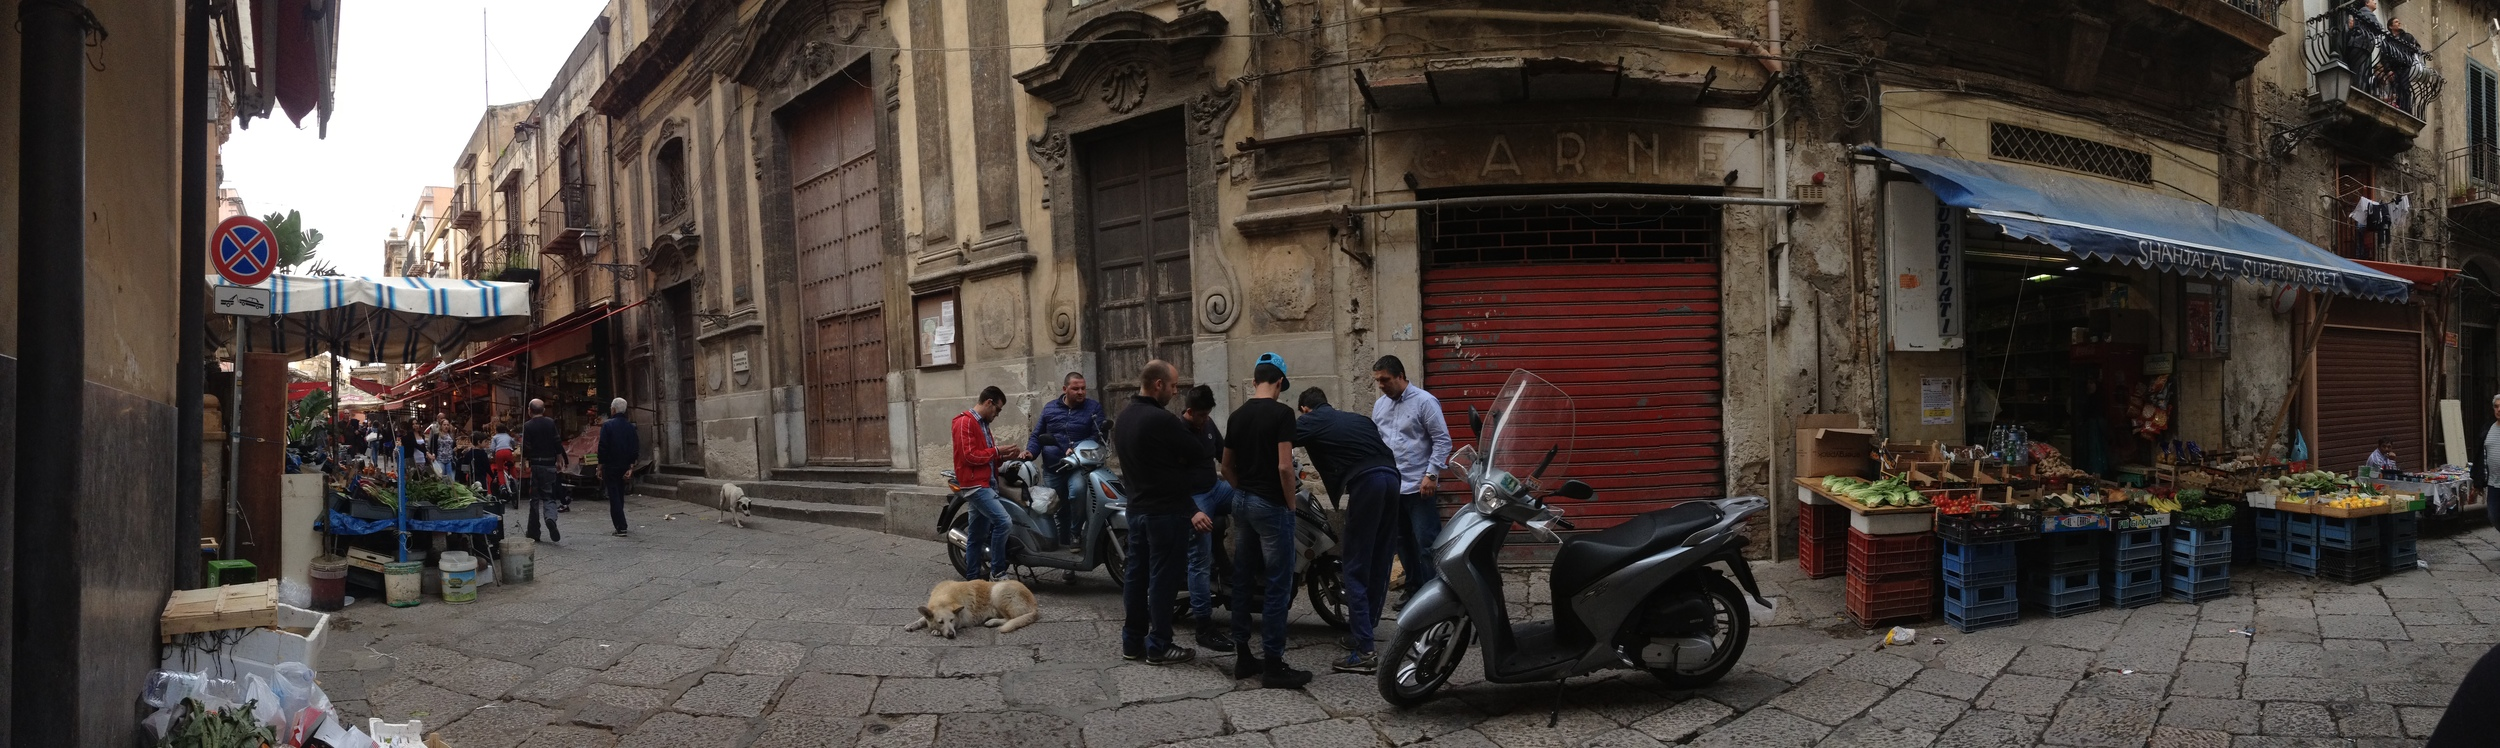 Palermo, April 2015